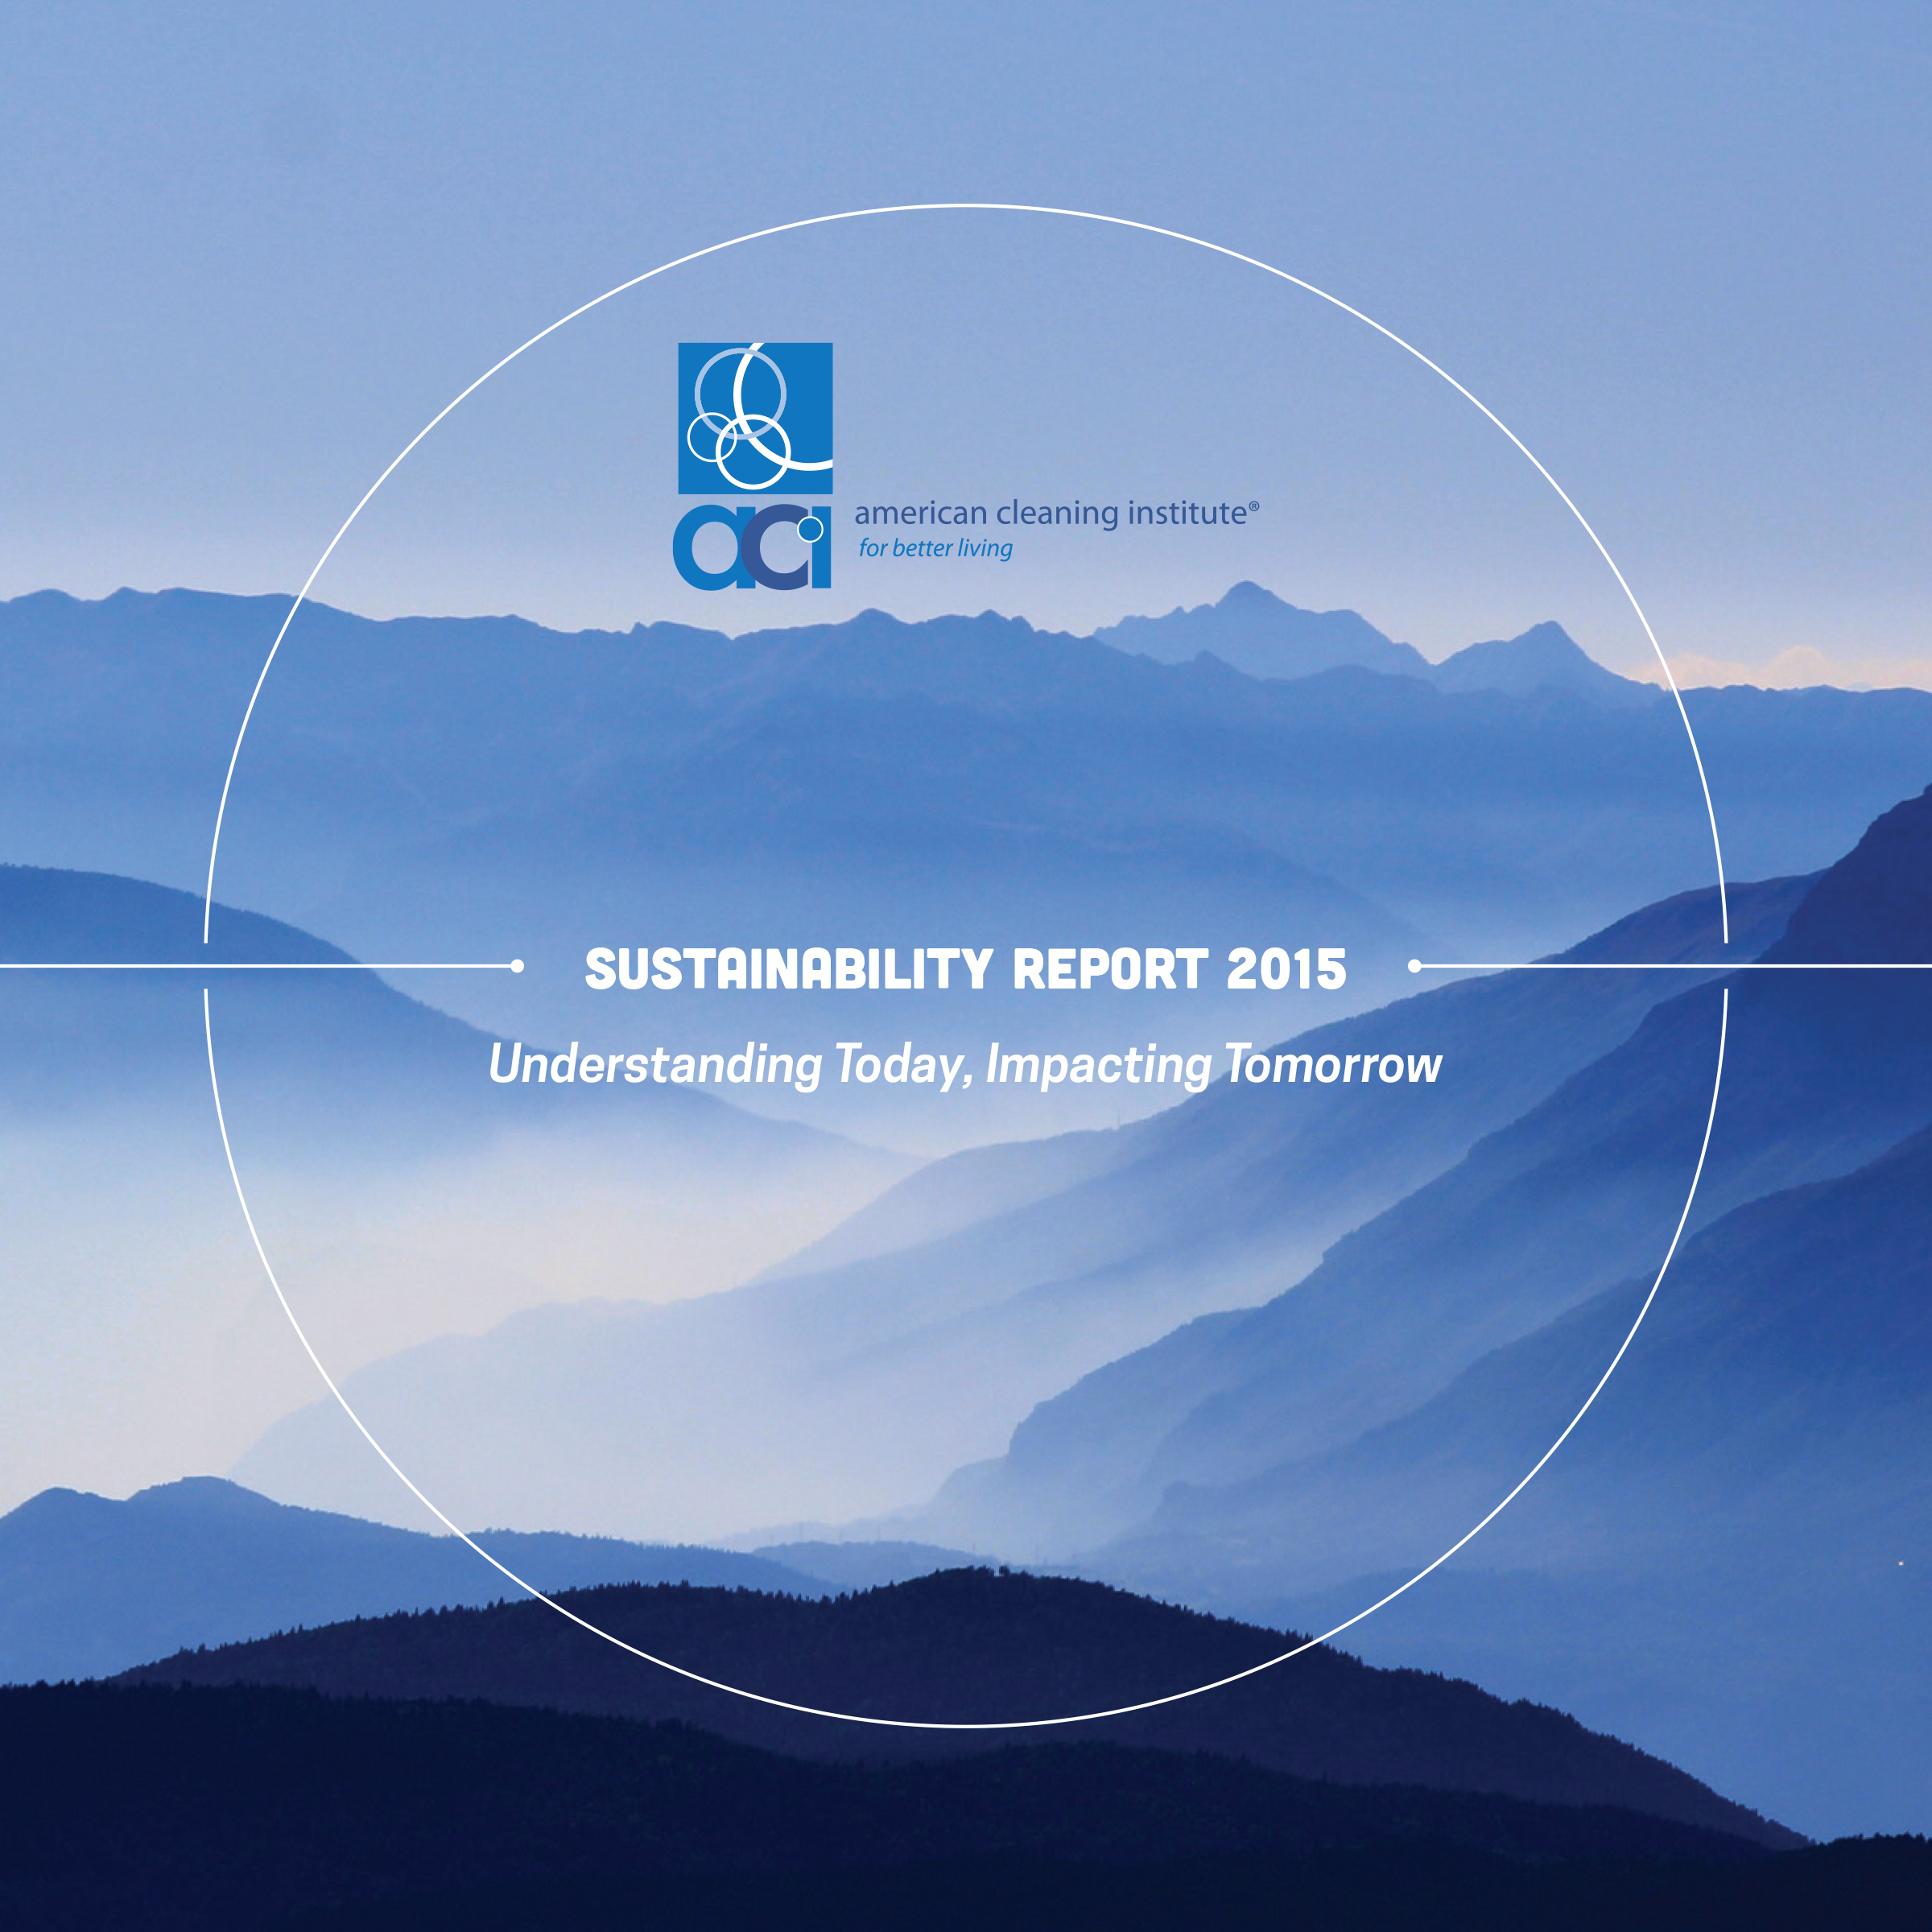 ACI Sustainability Report Cover Large_0.png